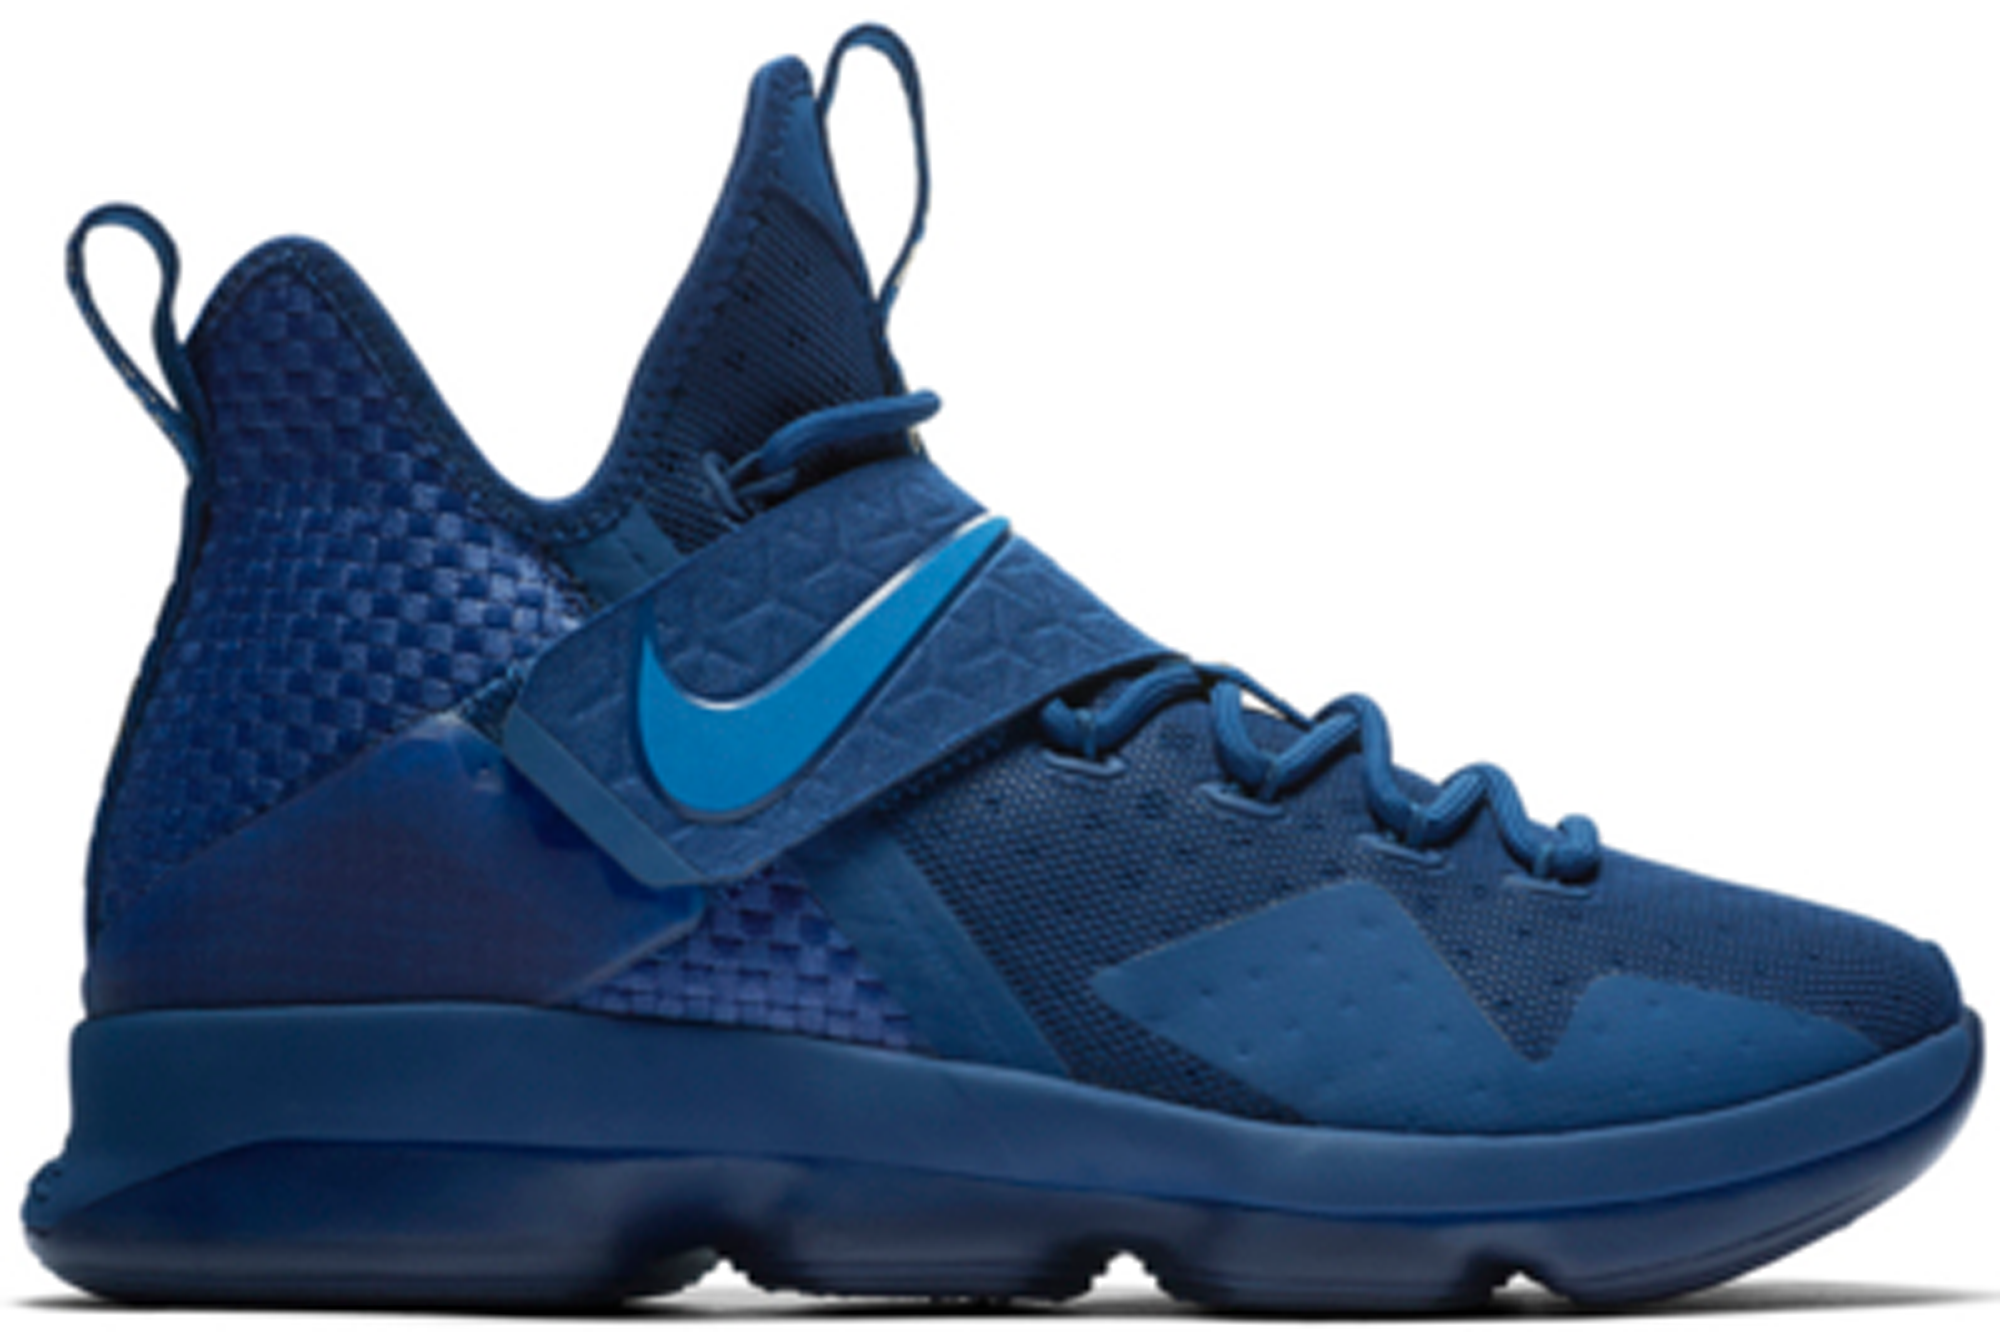 7e9846ce6055 Nike LeBron 14 Agimat Philippines. Nike LeBron 14. Colorway  Coastal Blue  White-Star Blue